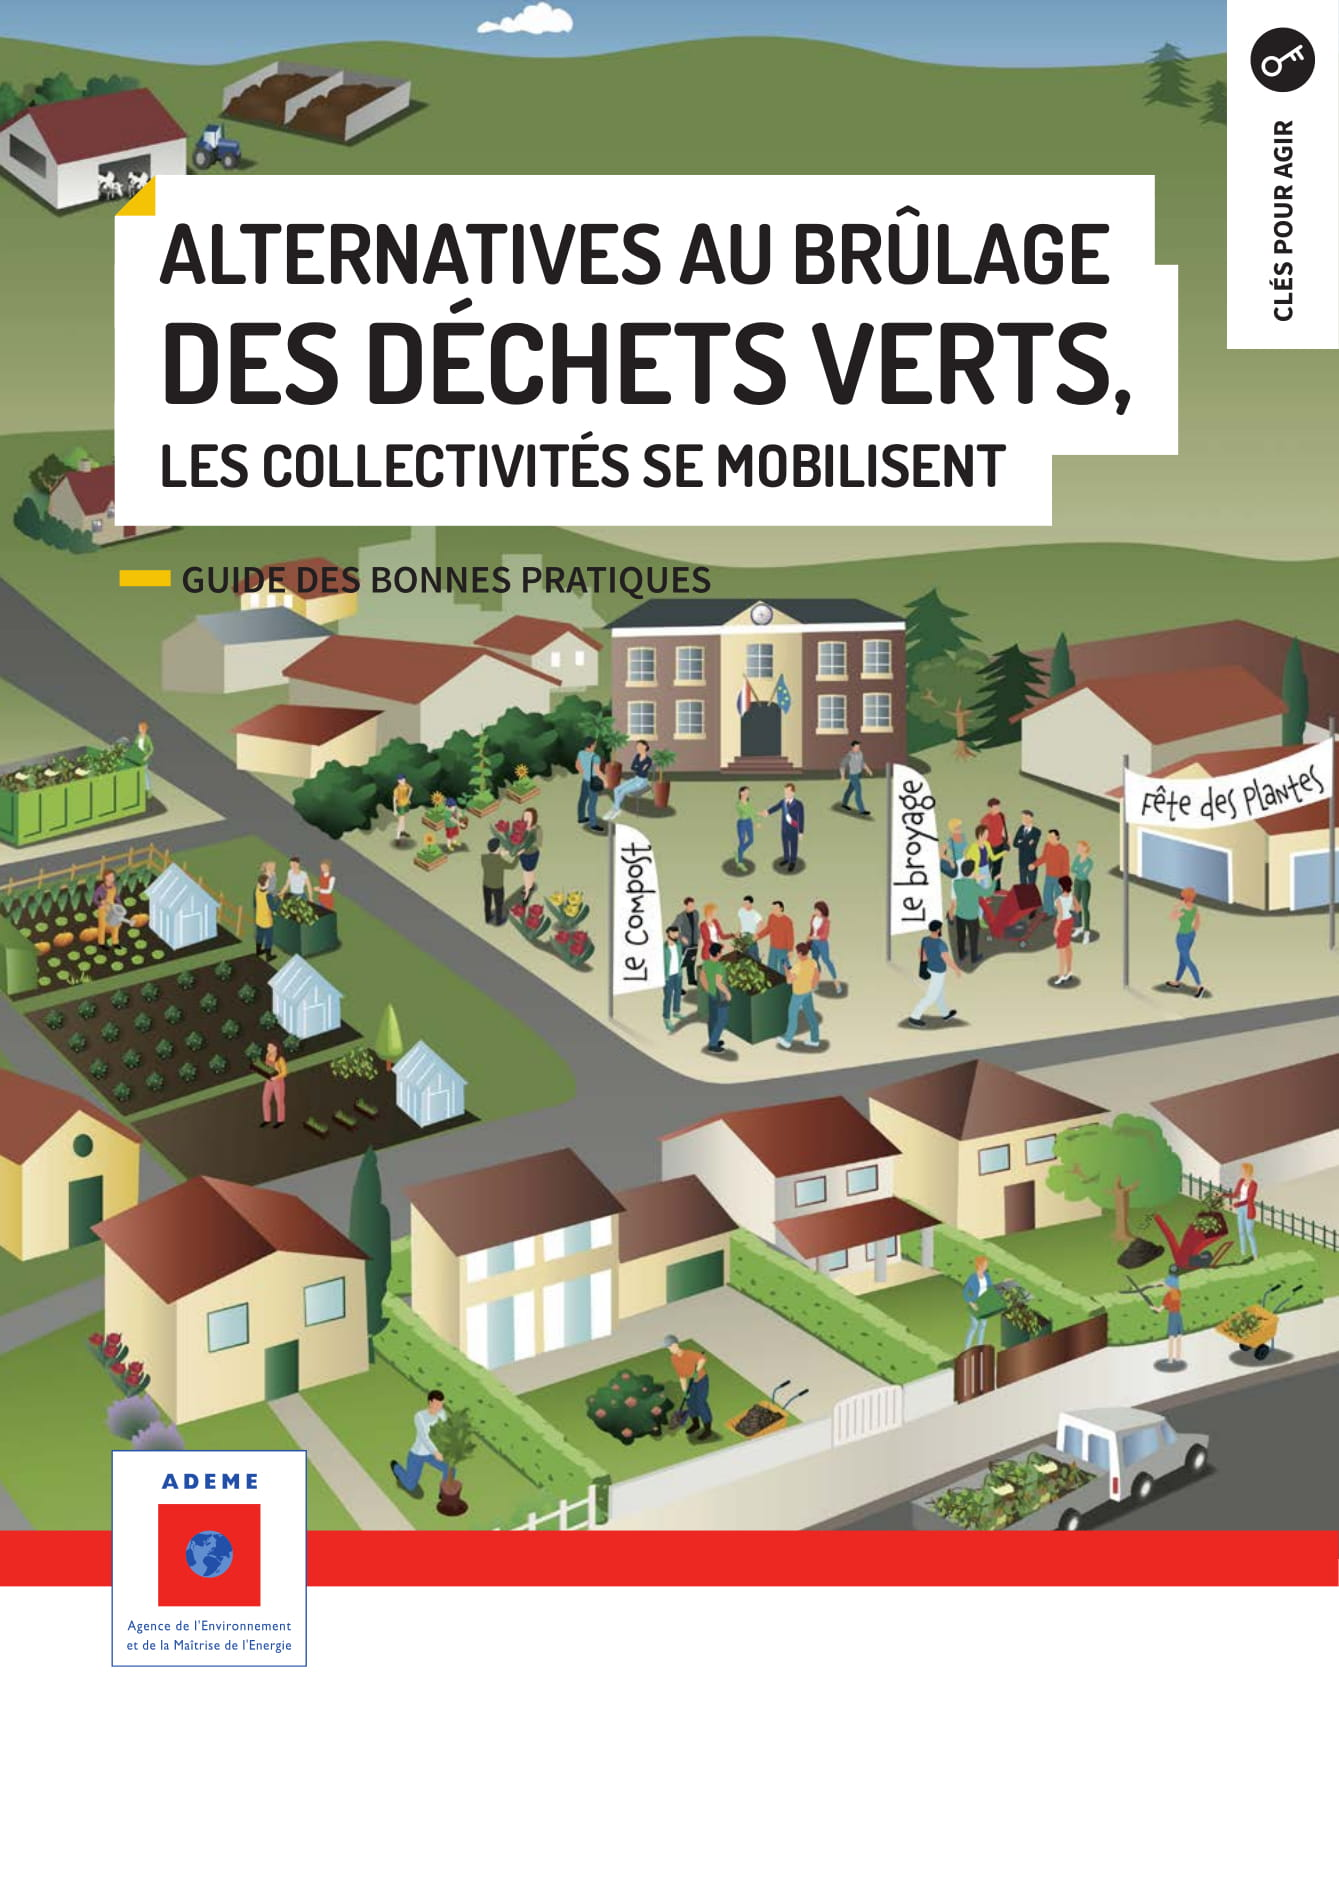 Guide brulage dchets verts 01